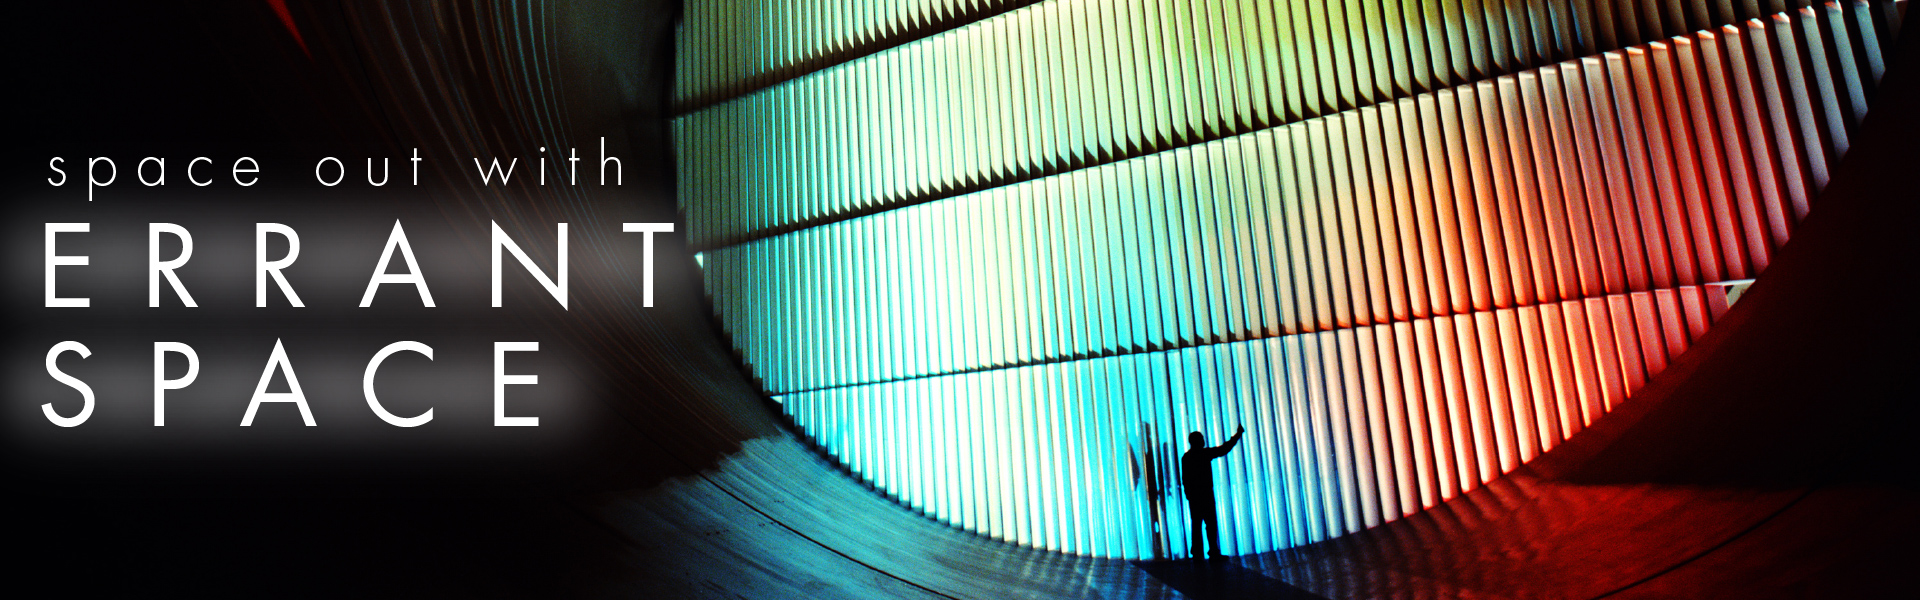 es_windtunnel_color_1920x600